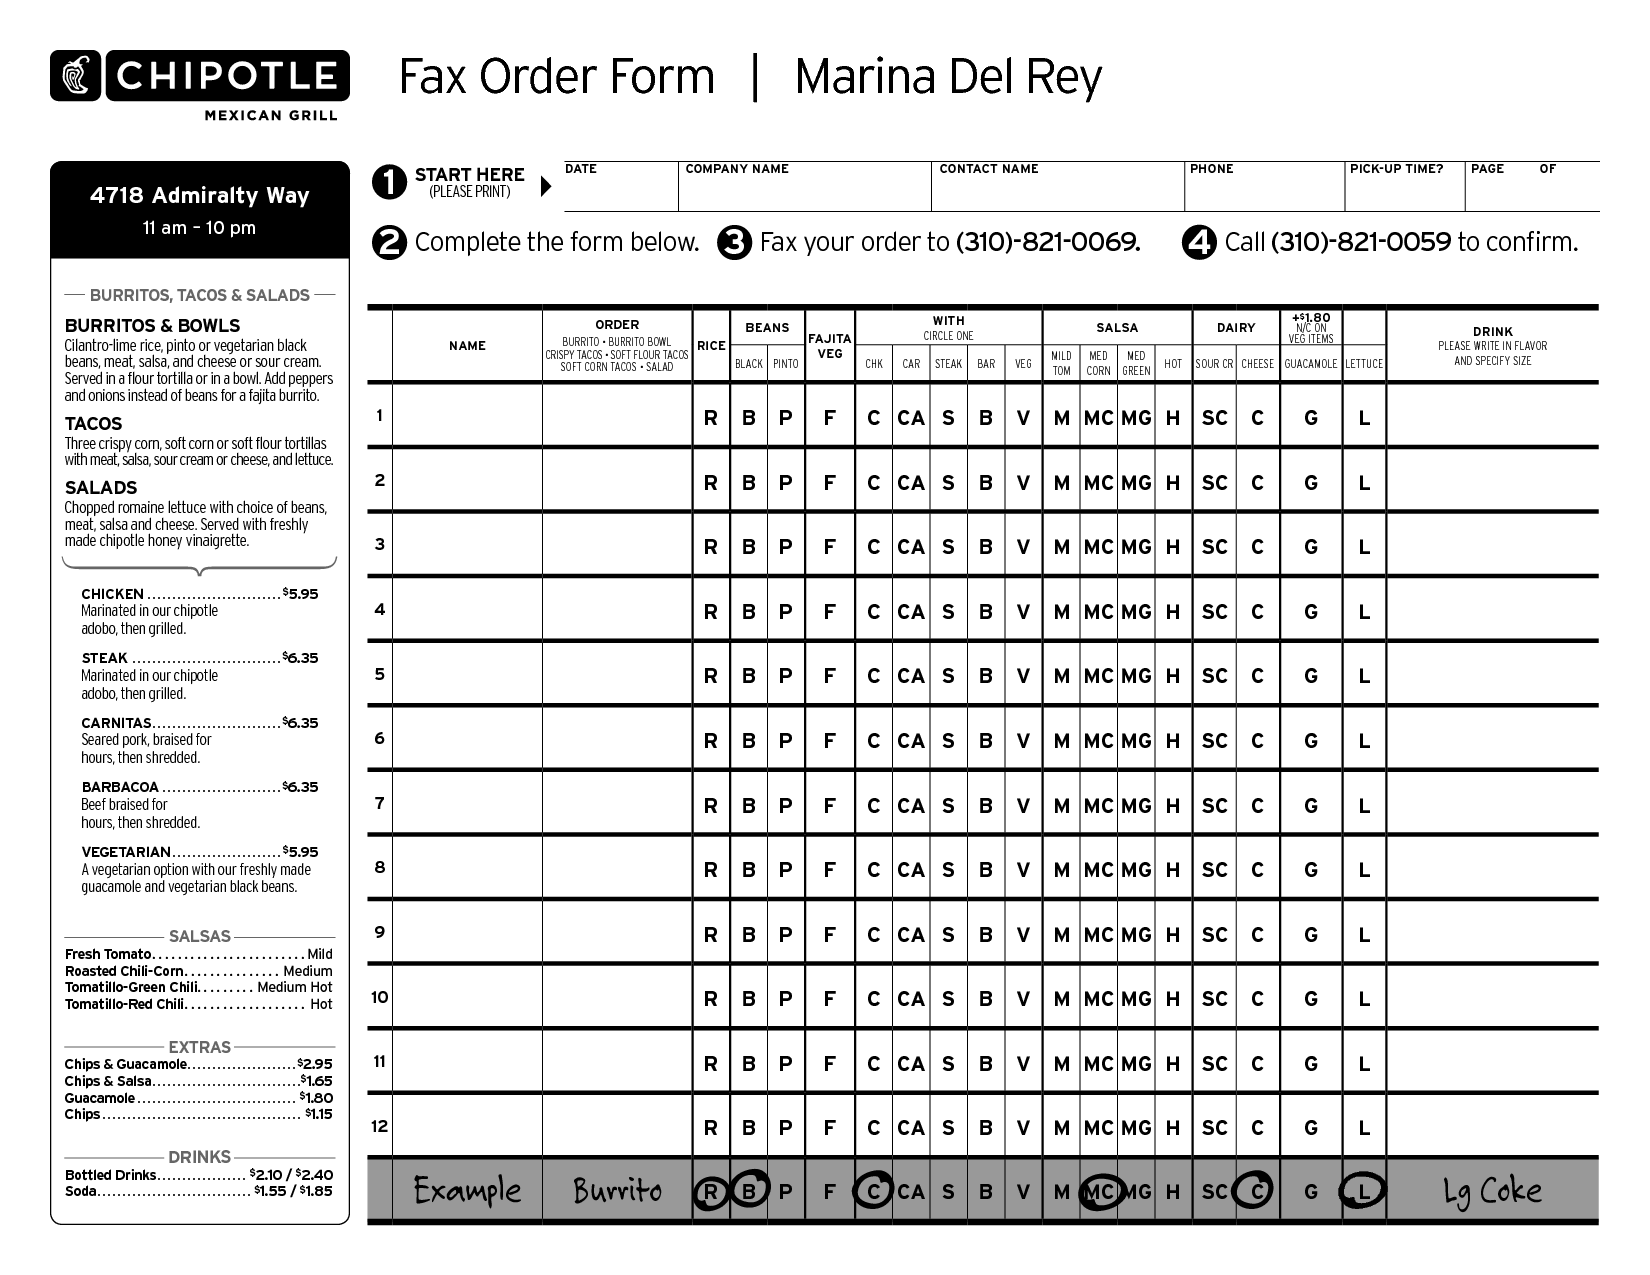 order form chipotle menu printable  #31: Chipotle Mexican Grill Fax Order Form. I choose this ..